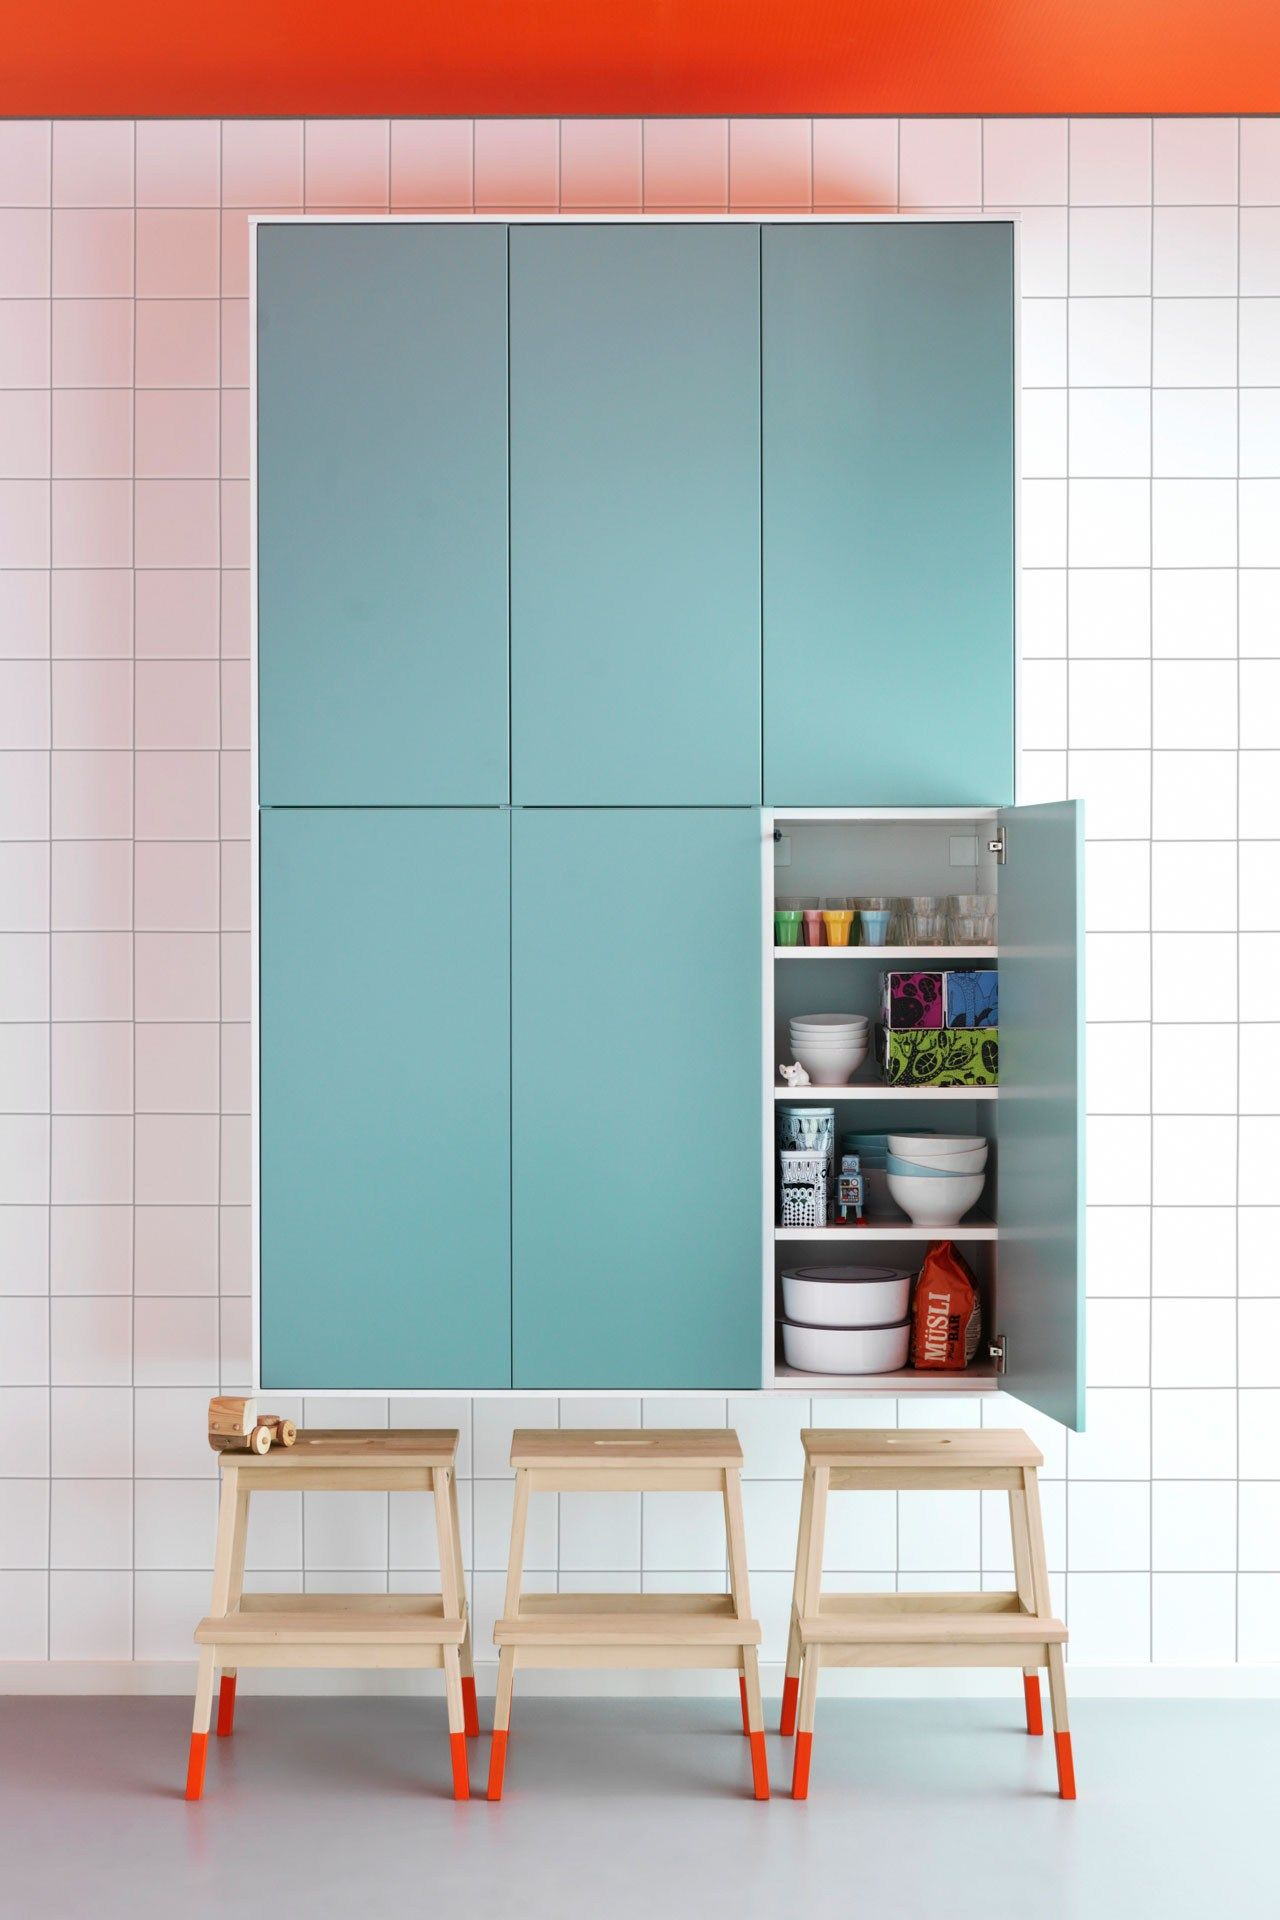 Small room ideas | Small spaces, Small rooms and Ikea kitchen shelves